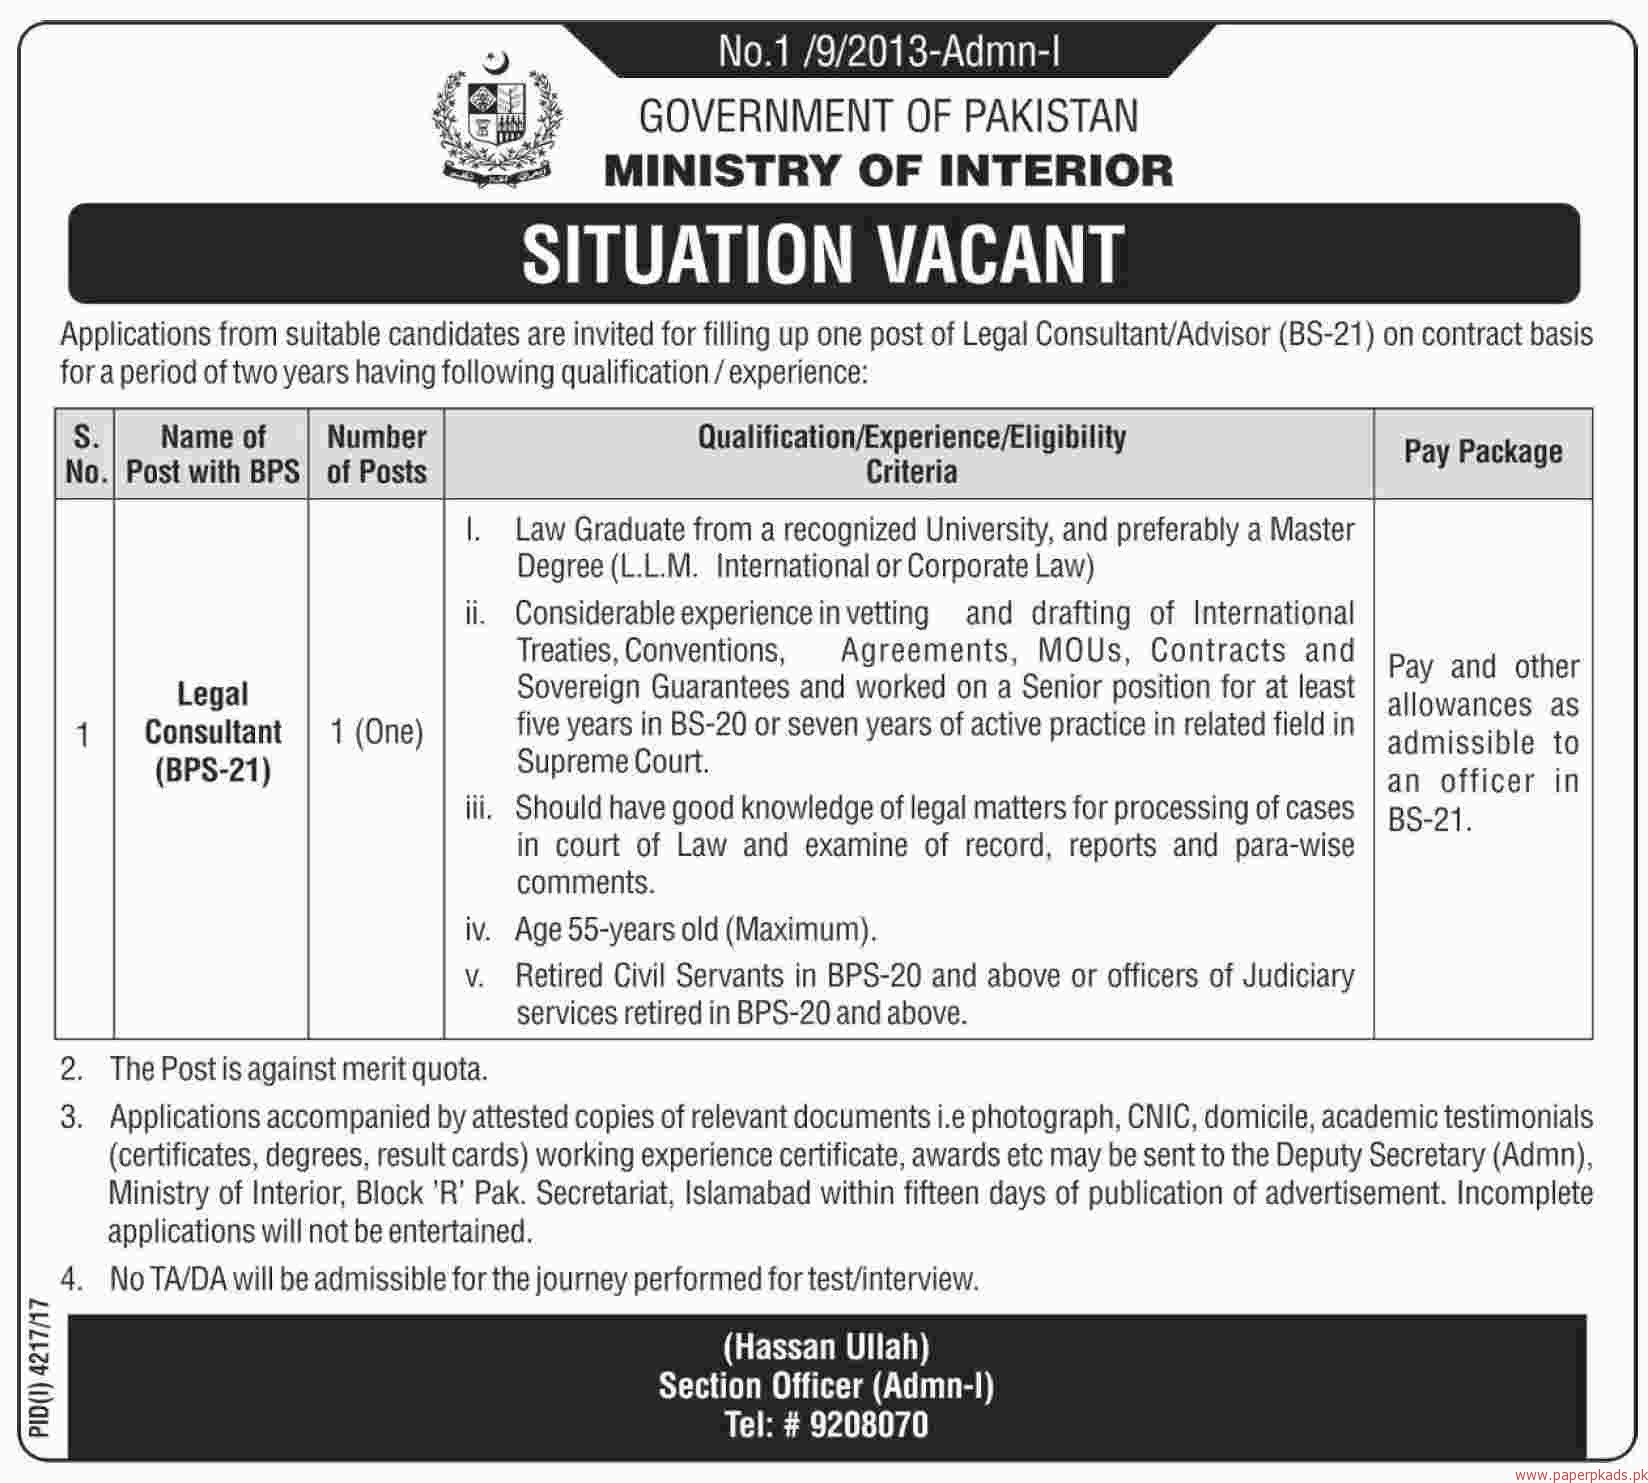 Government of Pakistan - Ministry of Interior Jobs 2018